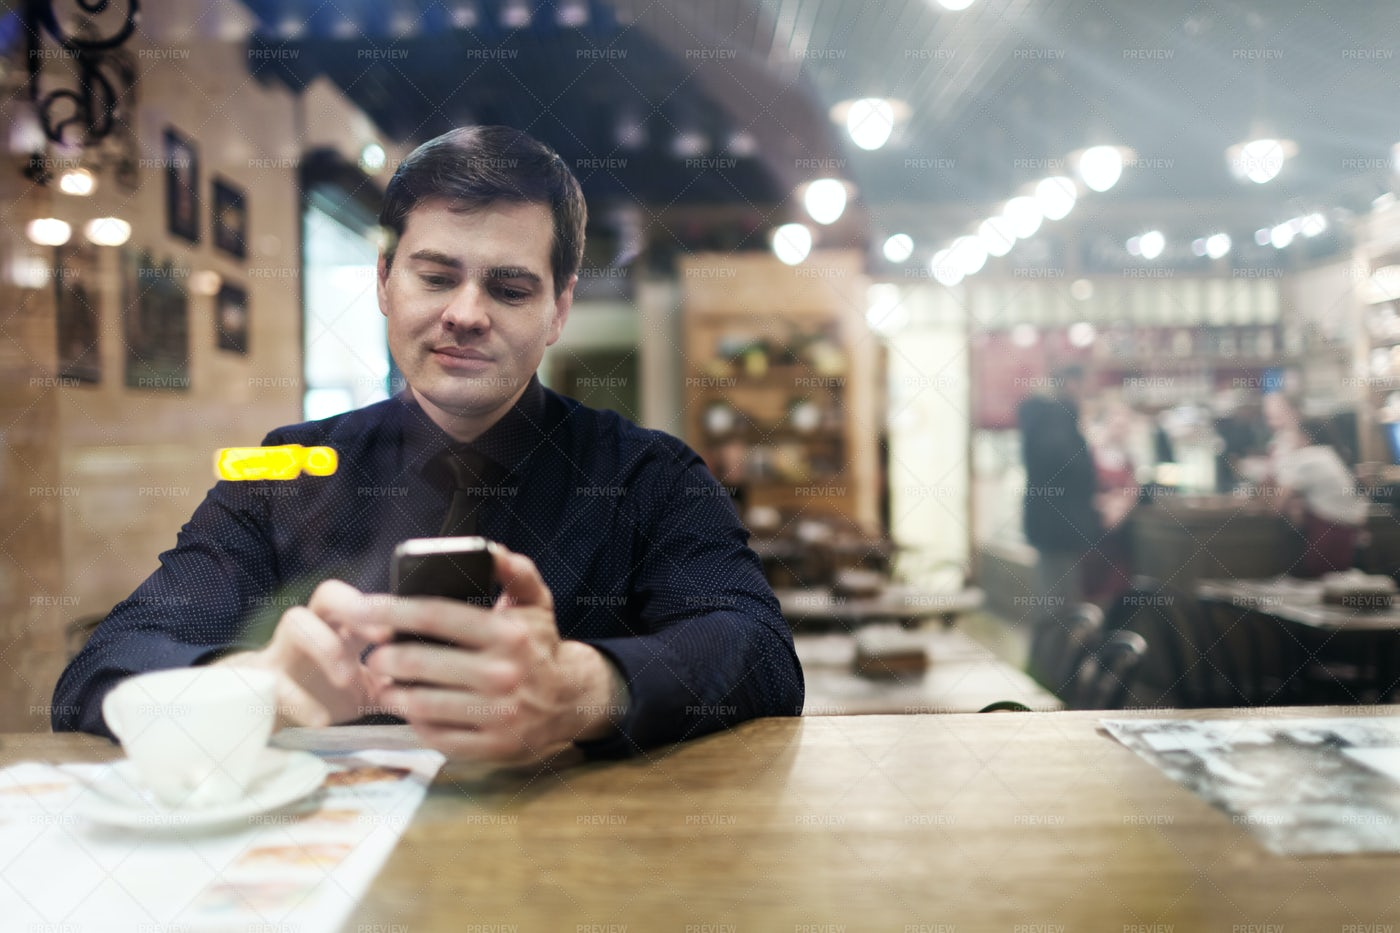 Messaging In A Cafe: Stock Photos